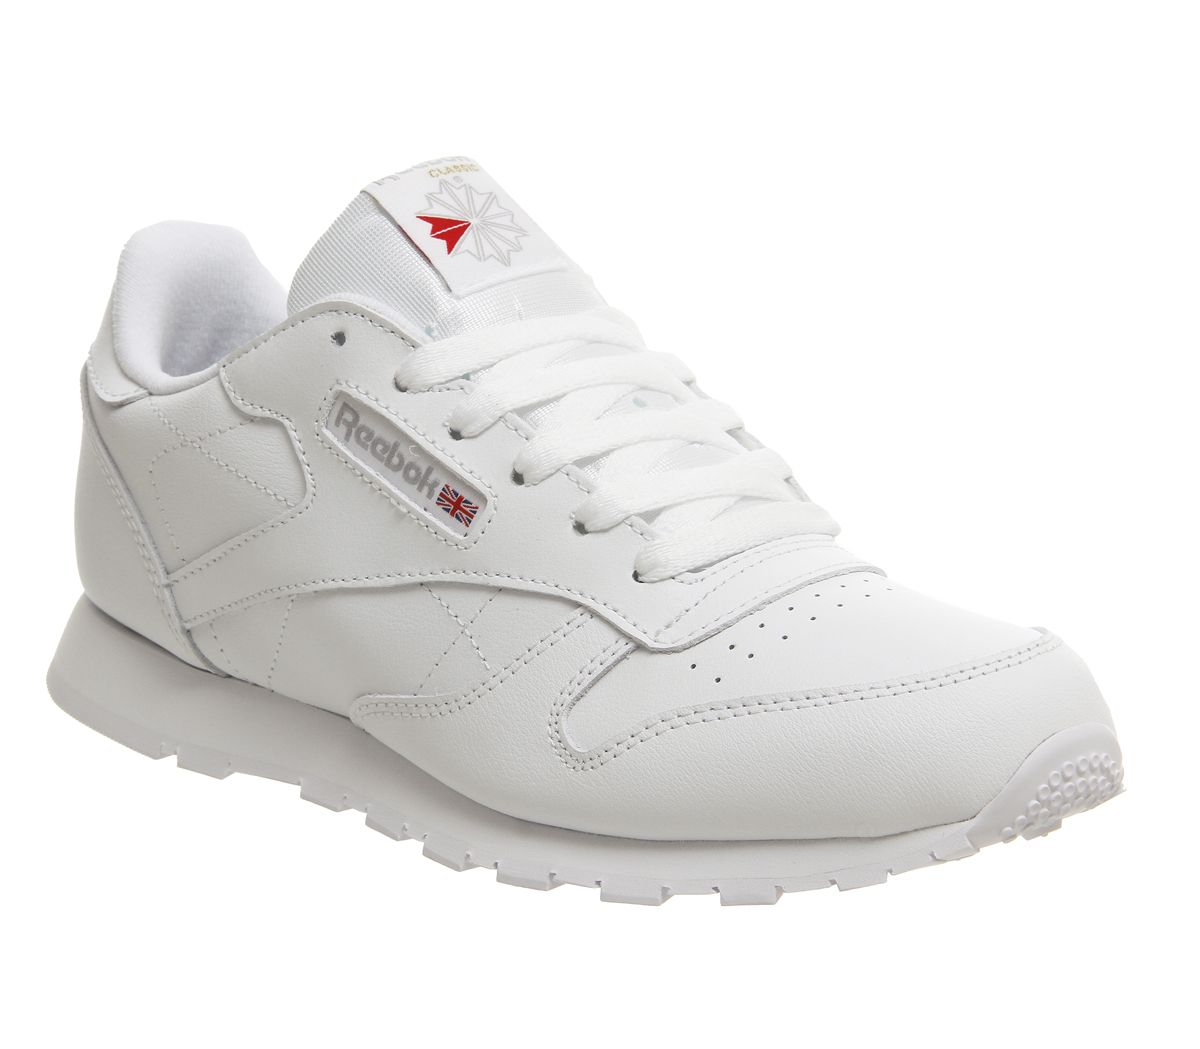 4502be54cb0 Reebok Classic Leather GS Trainers White - Hers trainers